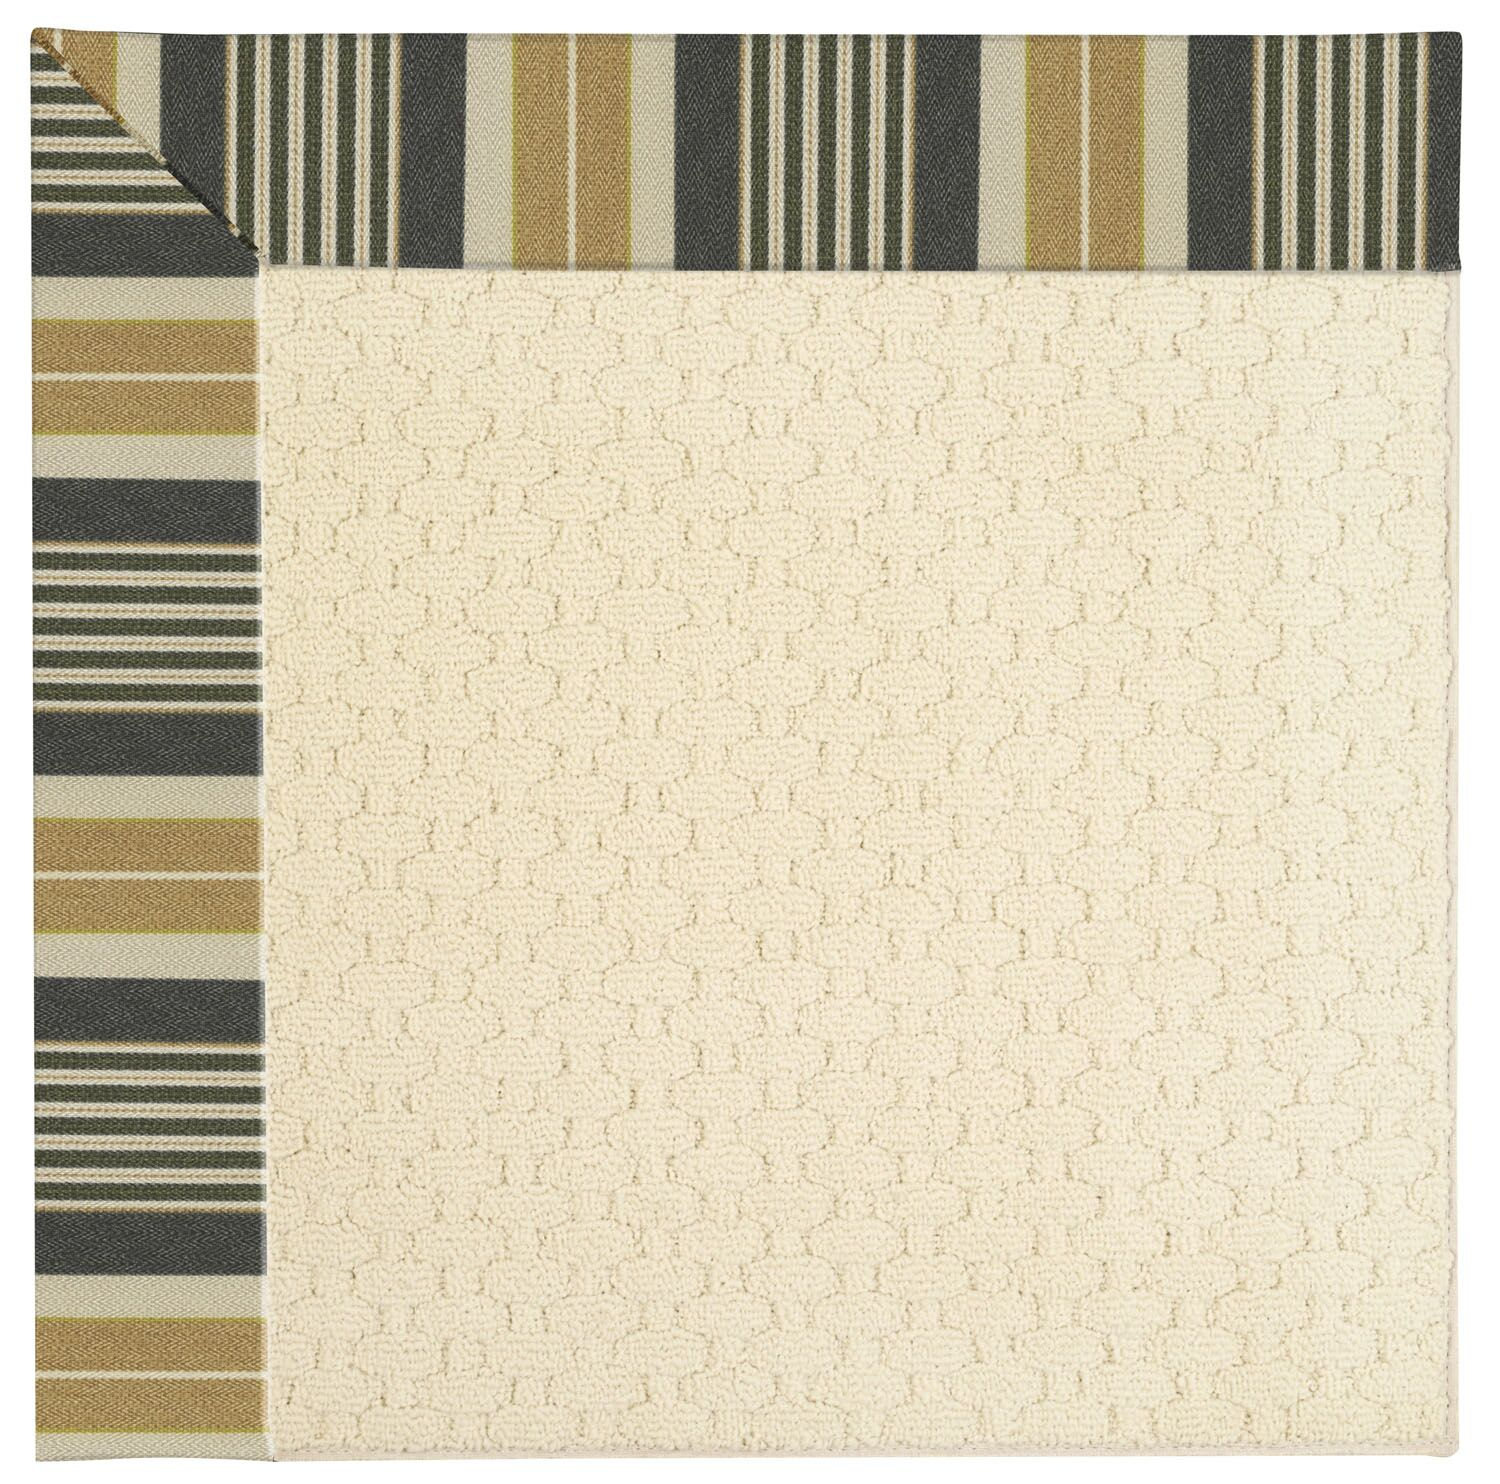 Lisle Beige Indoor/Outdoor Area Rug Rug Size: Square 8'